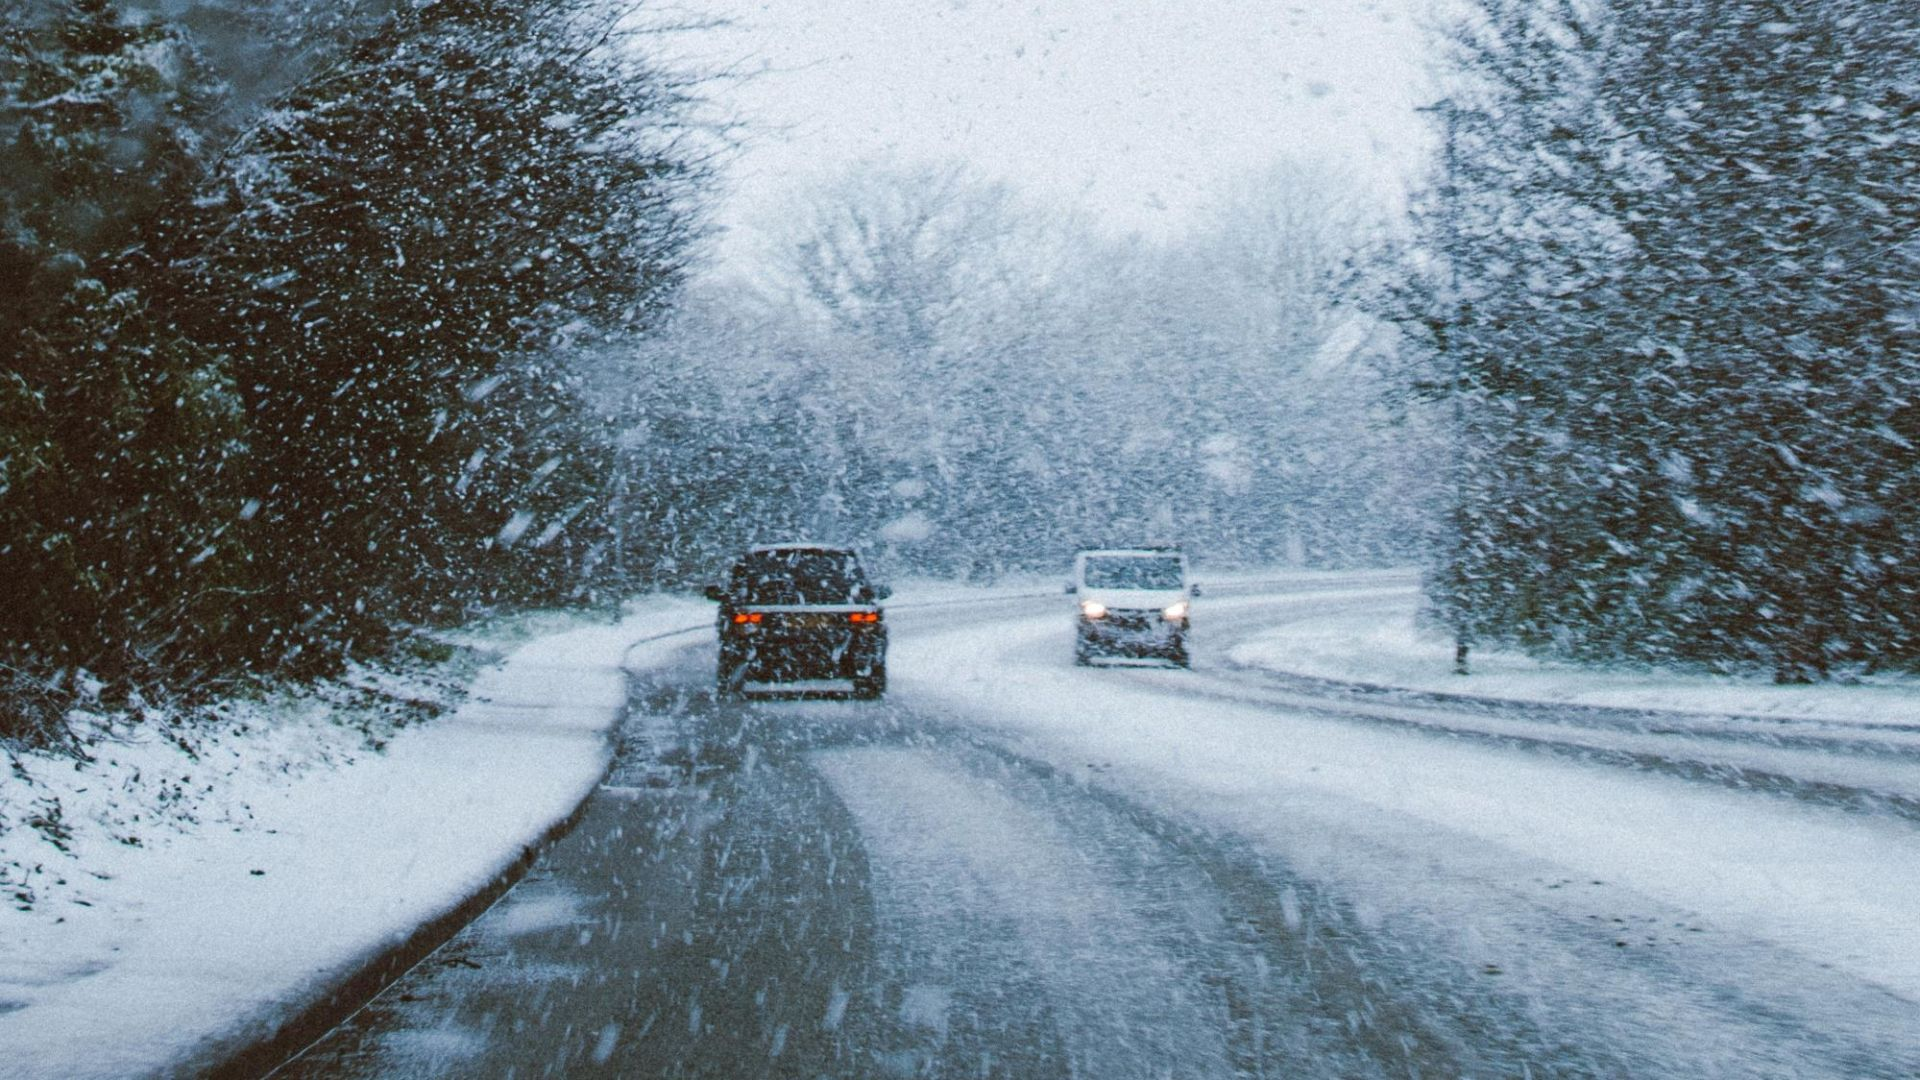 Winter conditions scare drivers